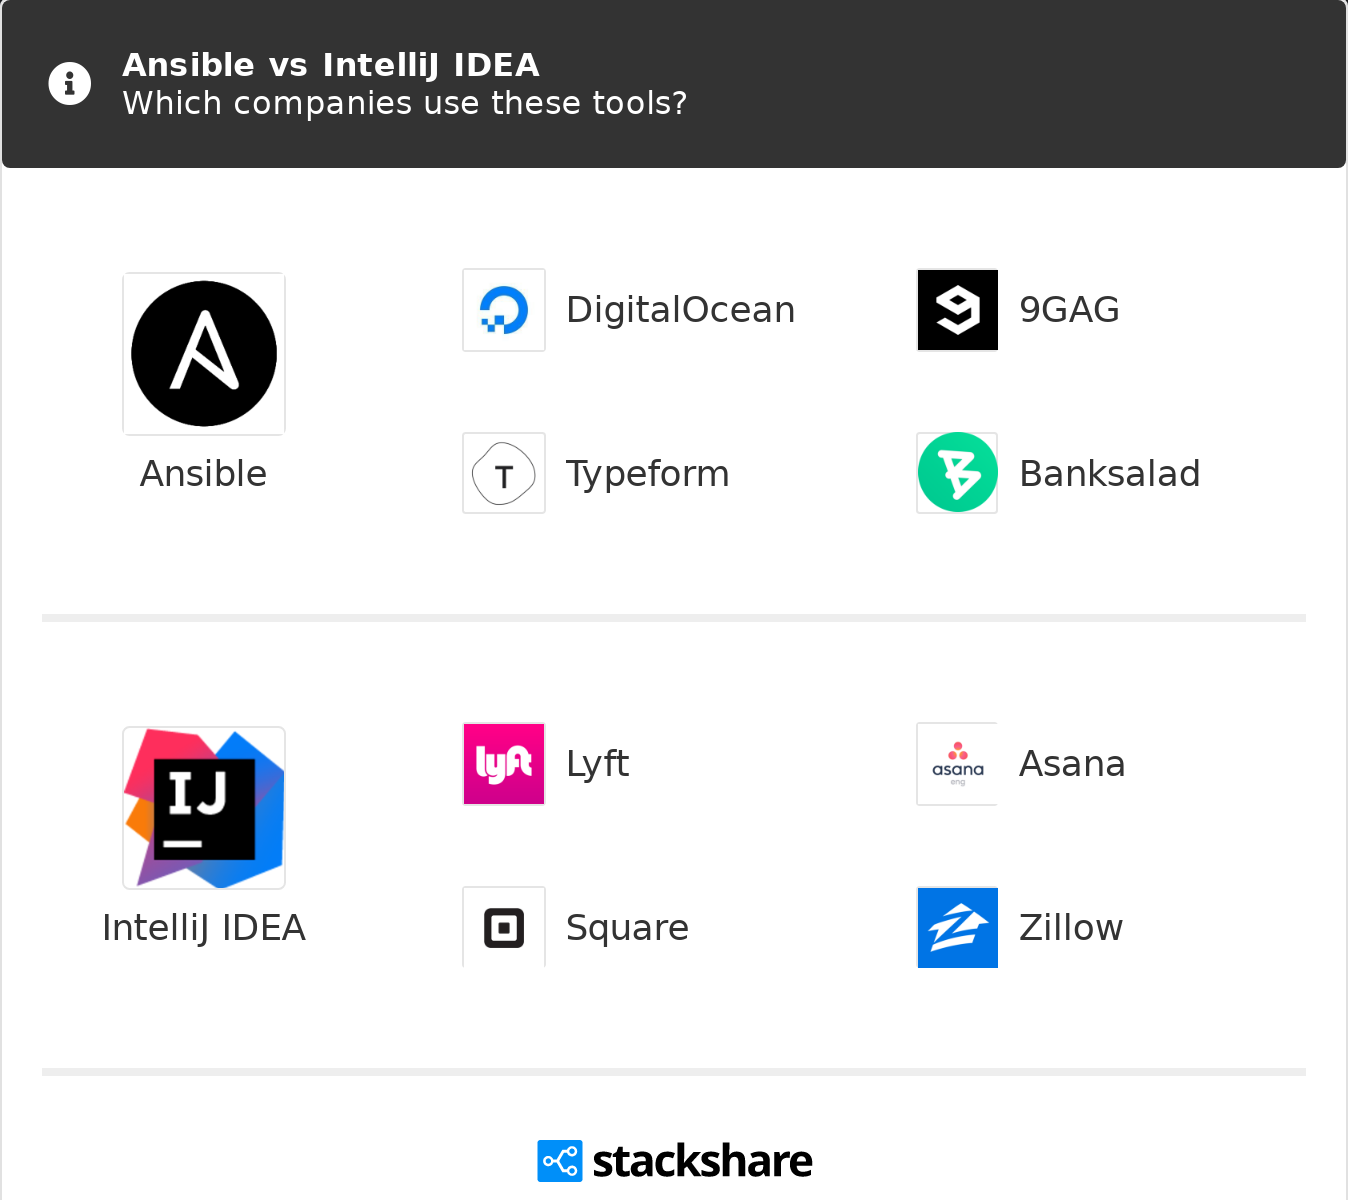 Ansible vs IntelliJ IDEA | What are the differences?